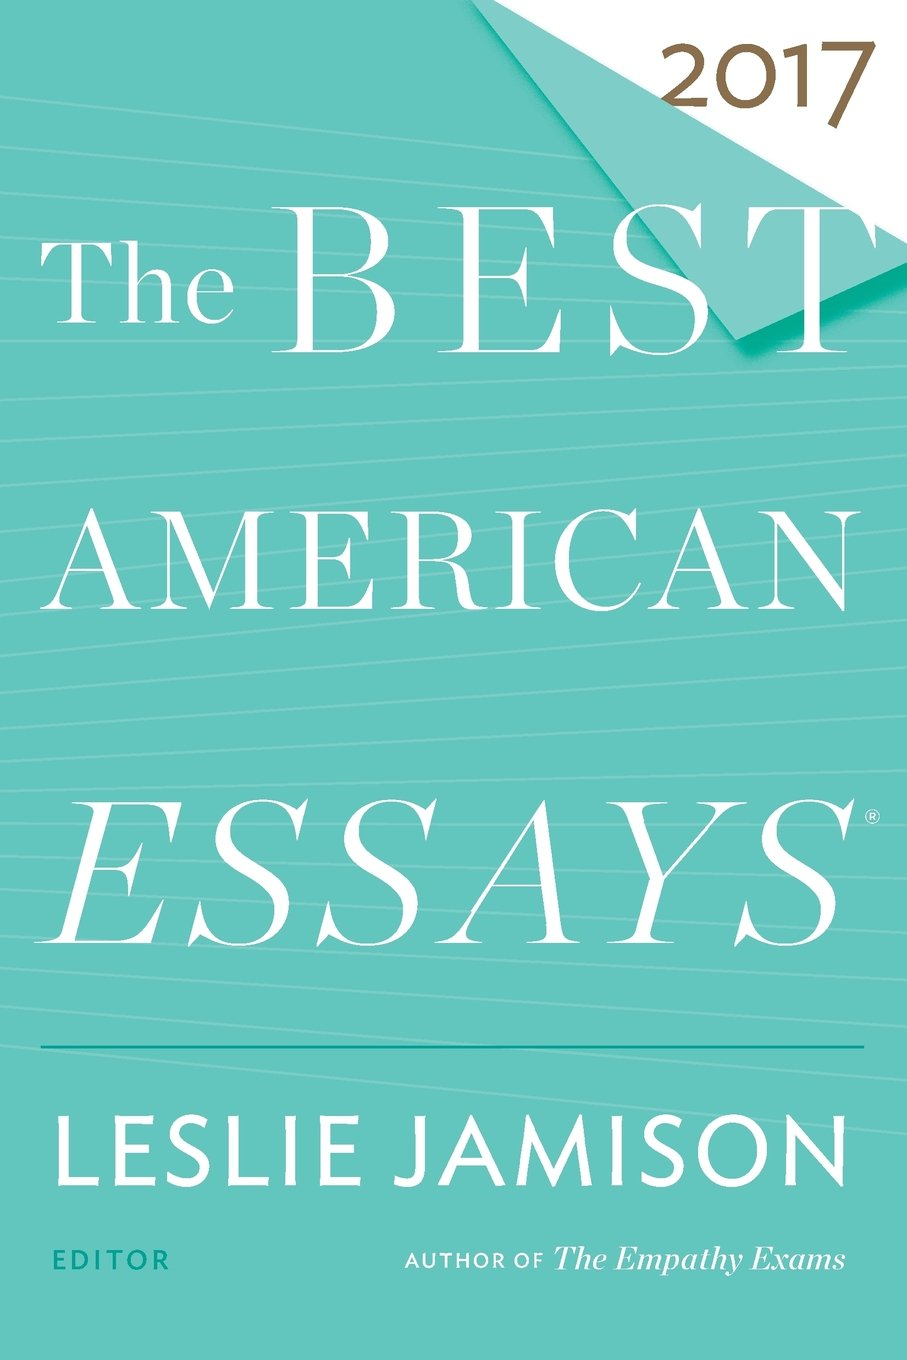 001 61tzl Nruvl Essay Example The Best American Wonderful Essays 2018 Pdf 2017 Table Of Contents 2015 Free Full